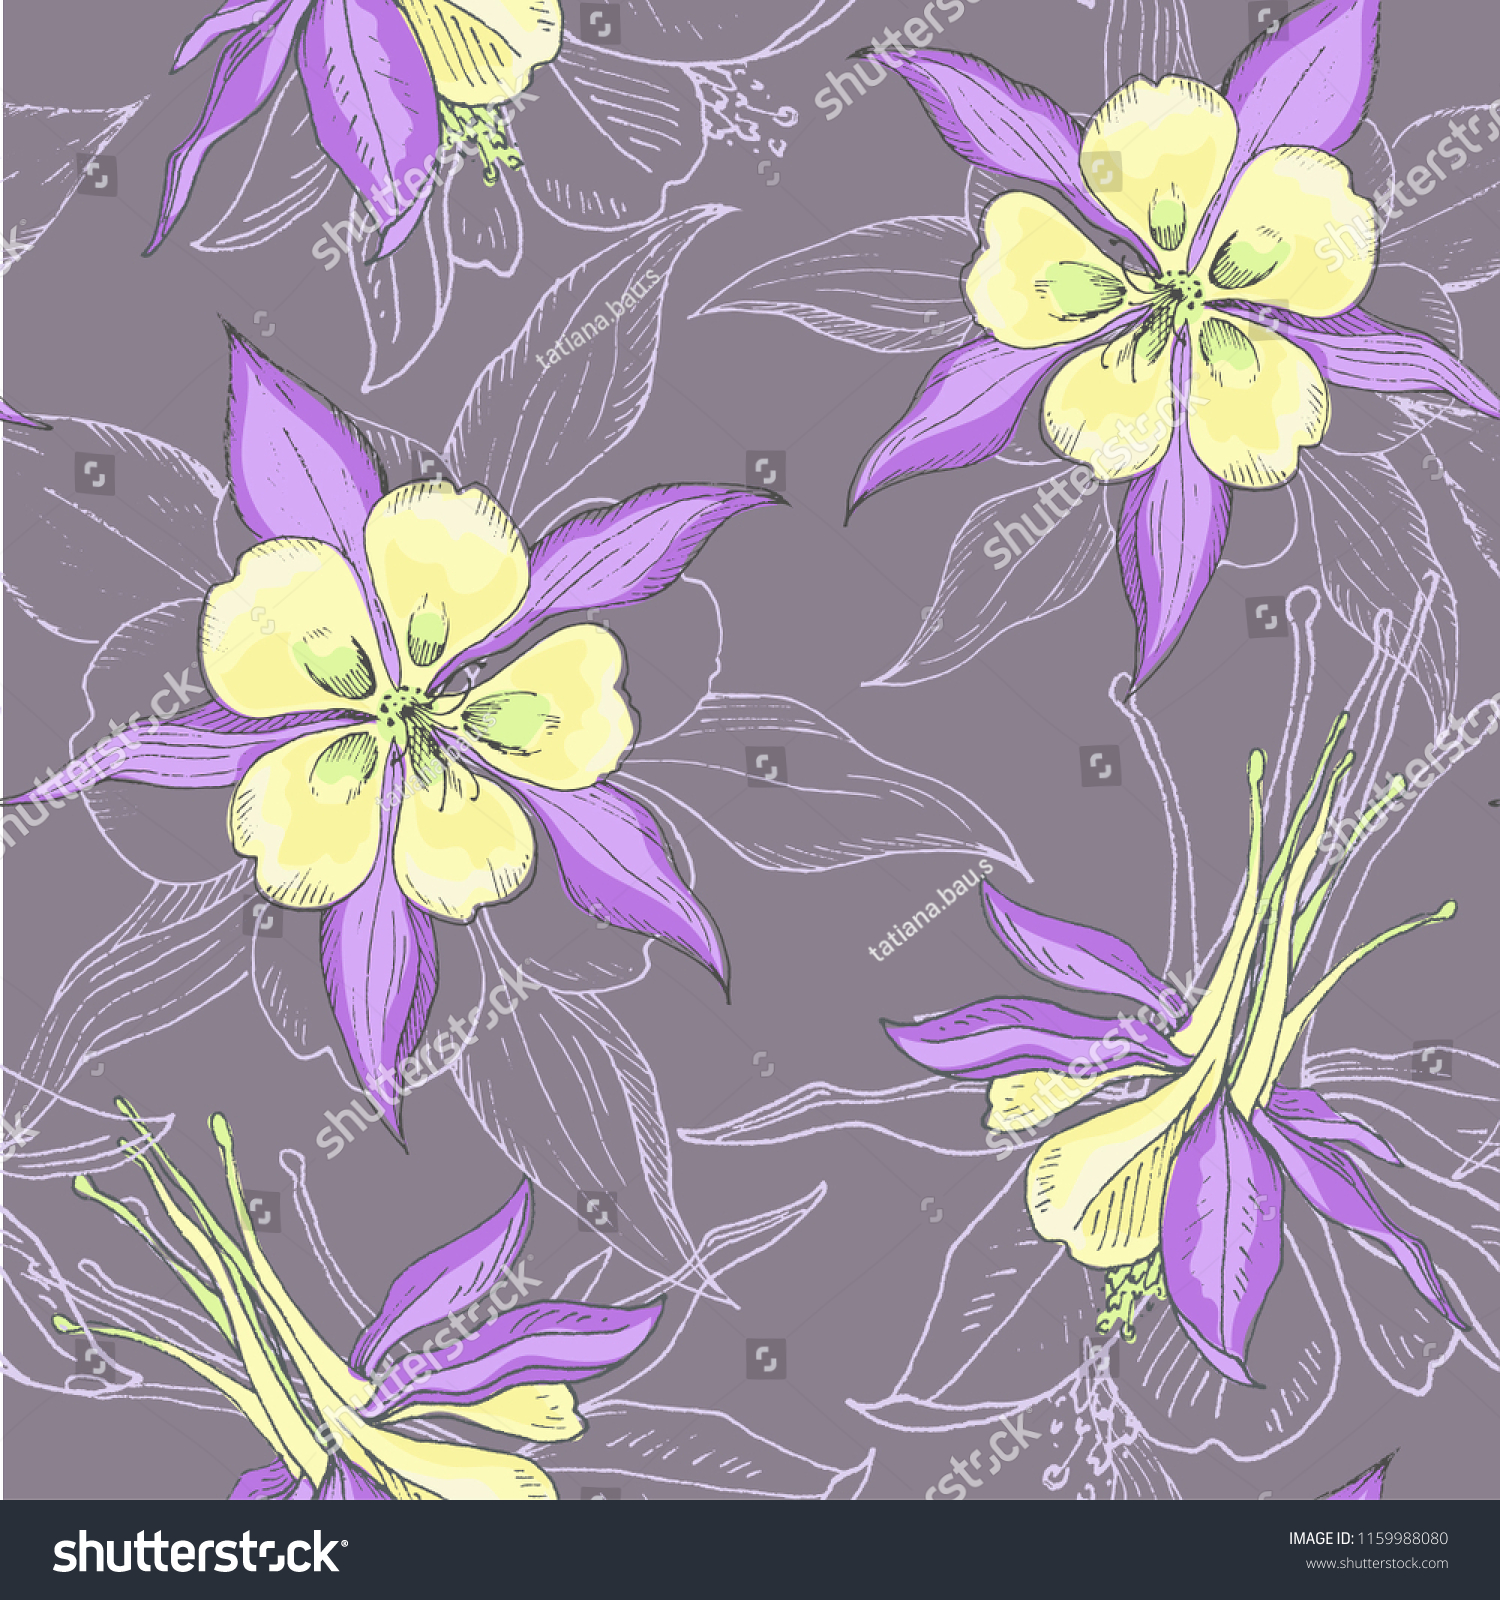 Floral Wallpaper Blooming Delicate Flowers Seamless Stock Image